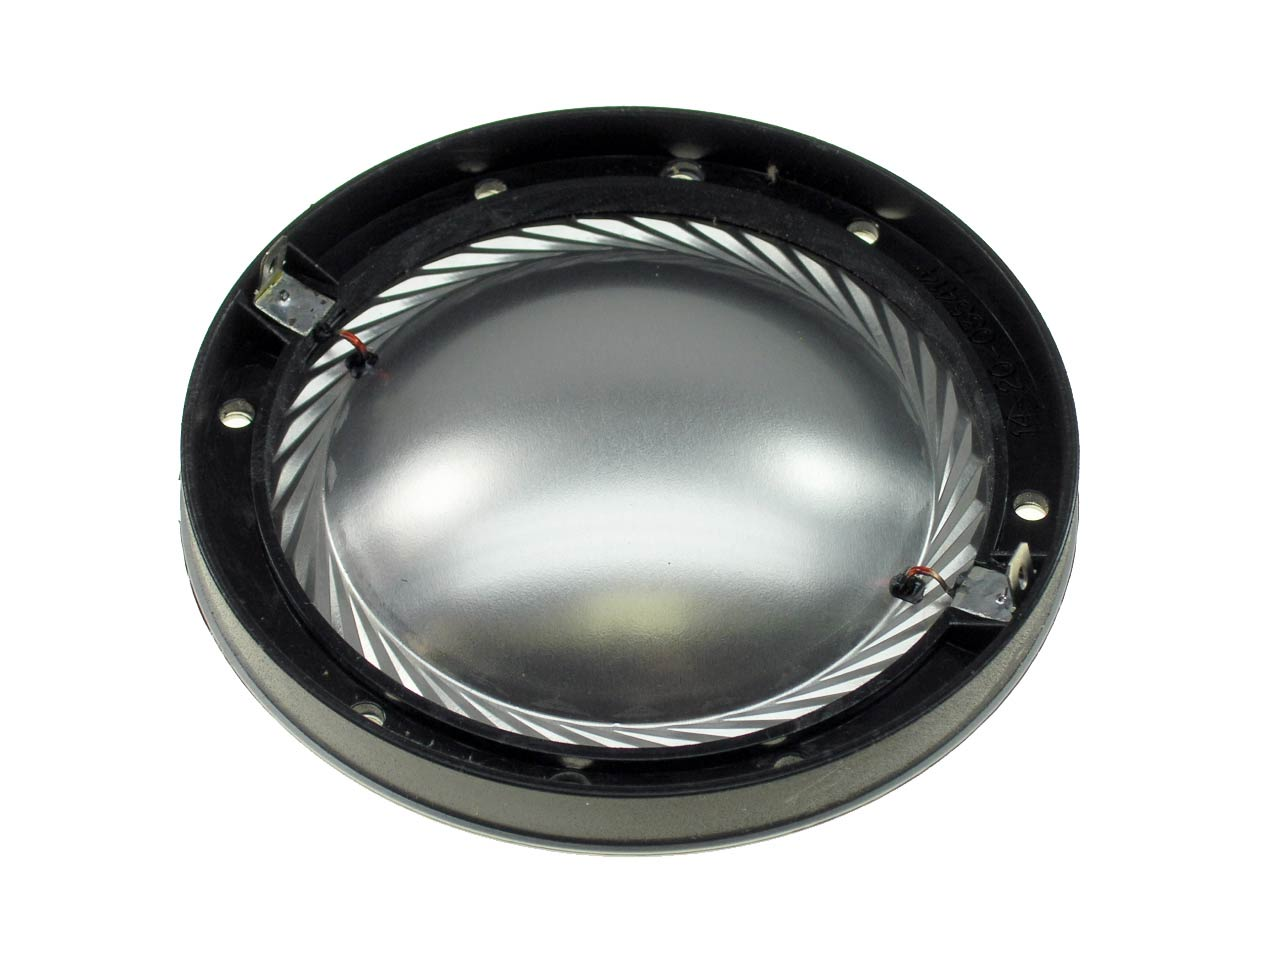 Yamaha Factory Speaker Diaphragm, JAY 2299, 16 Ohm, YAM-25885XX